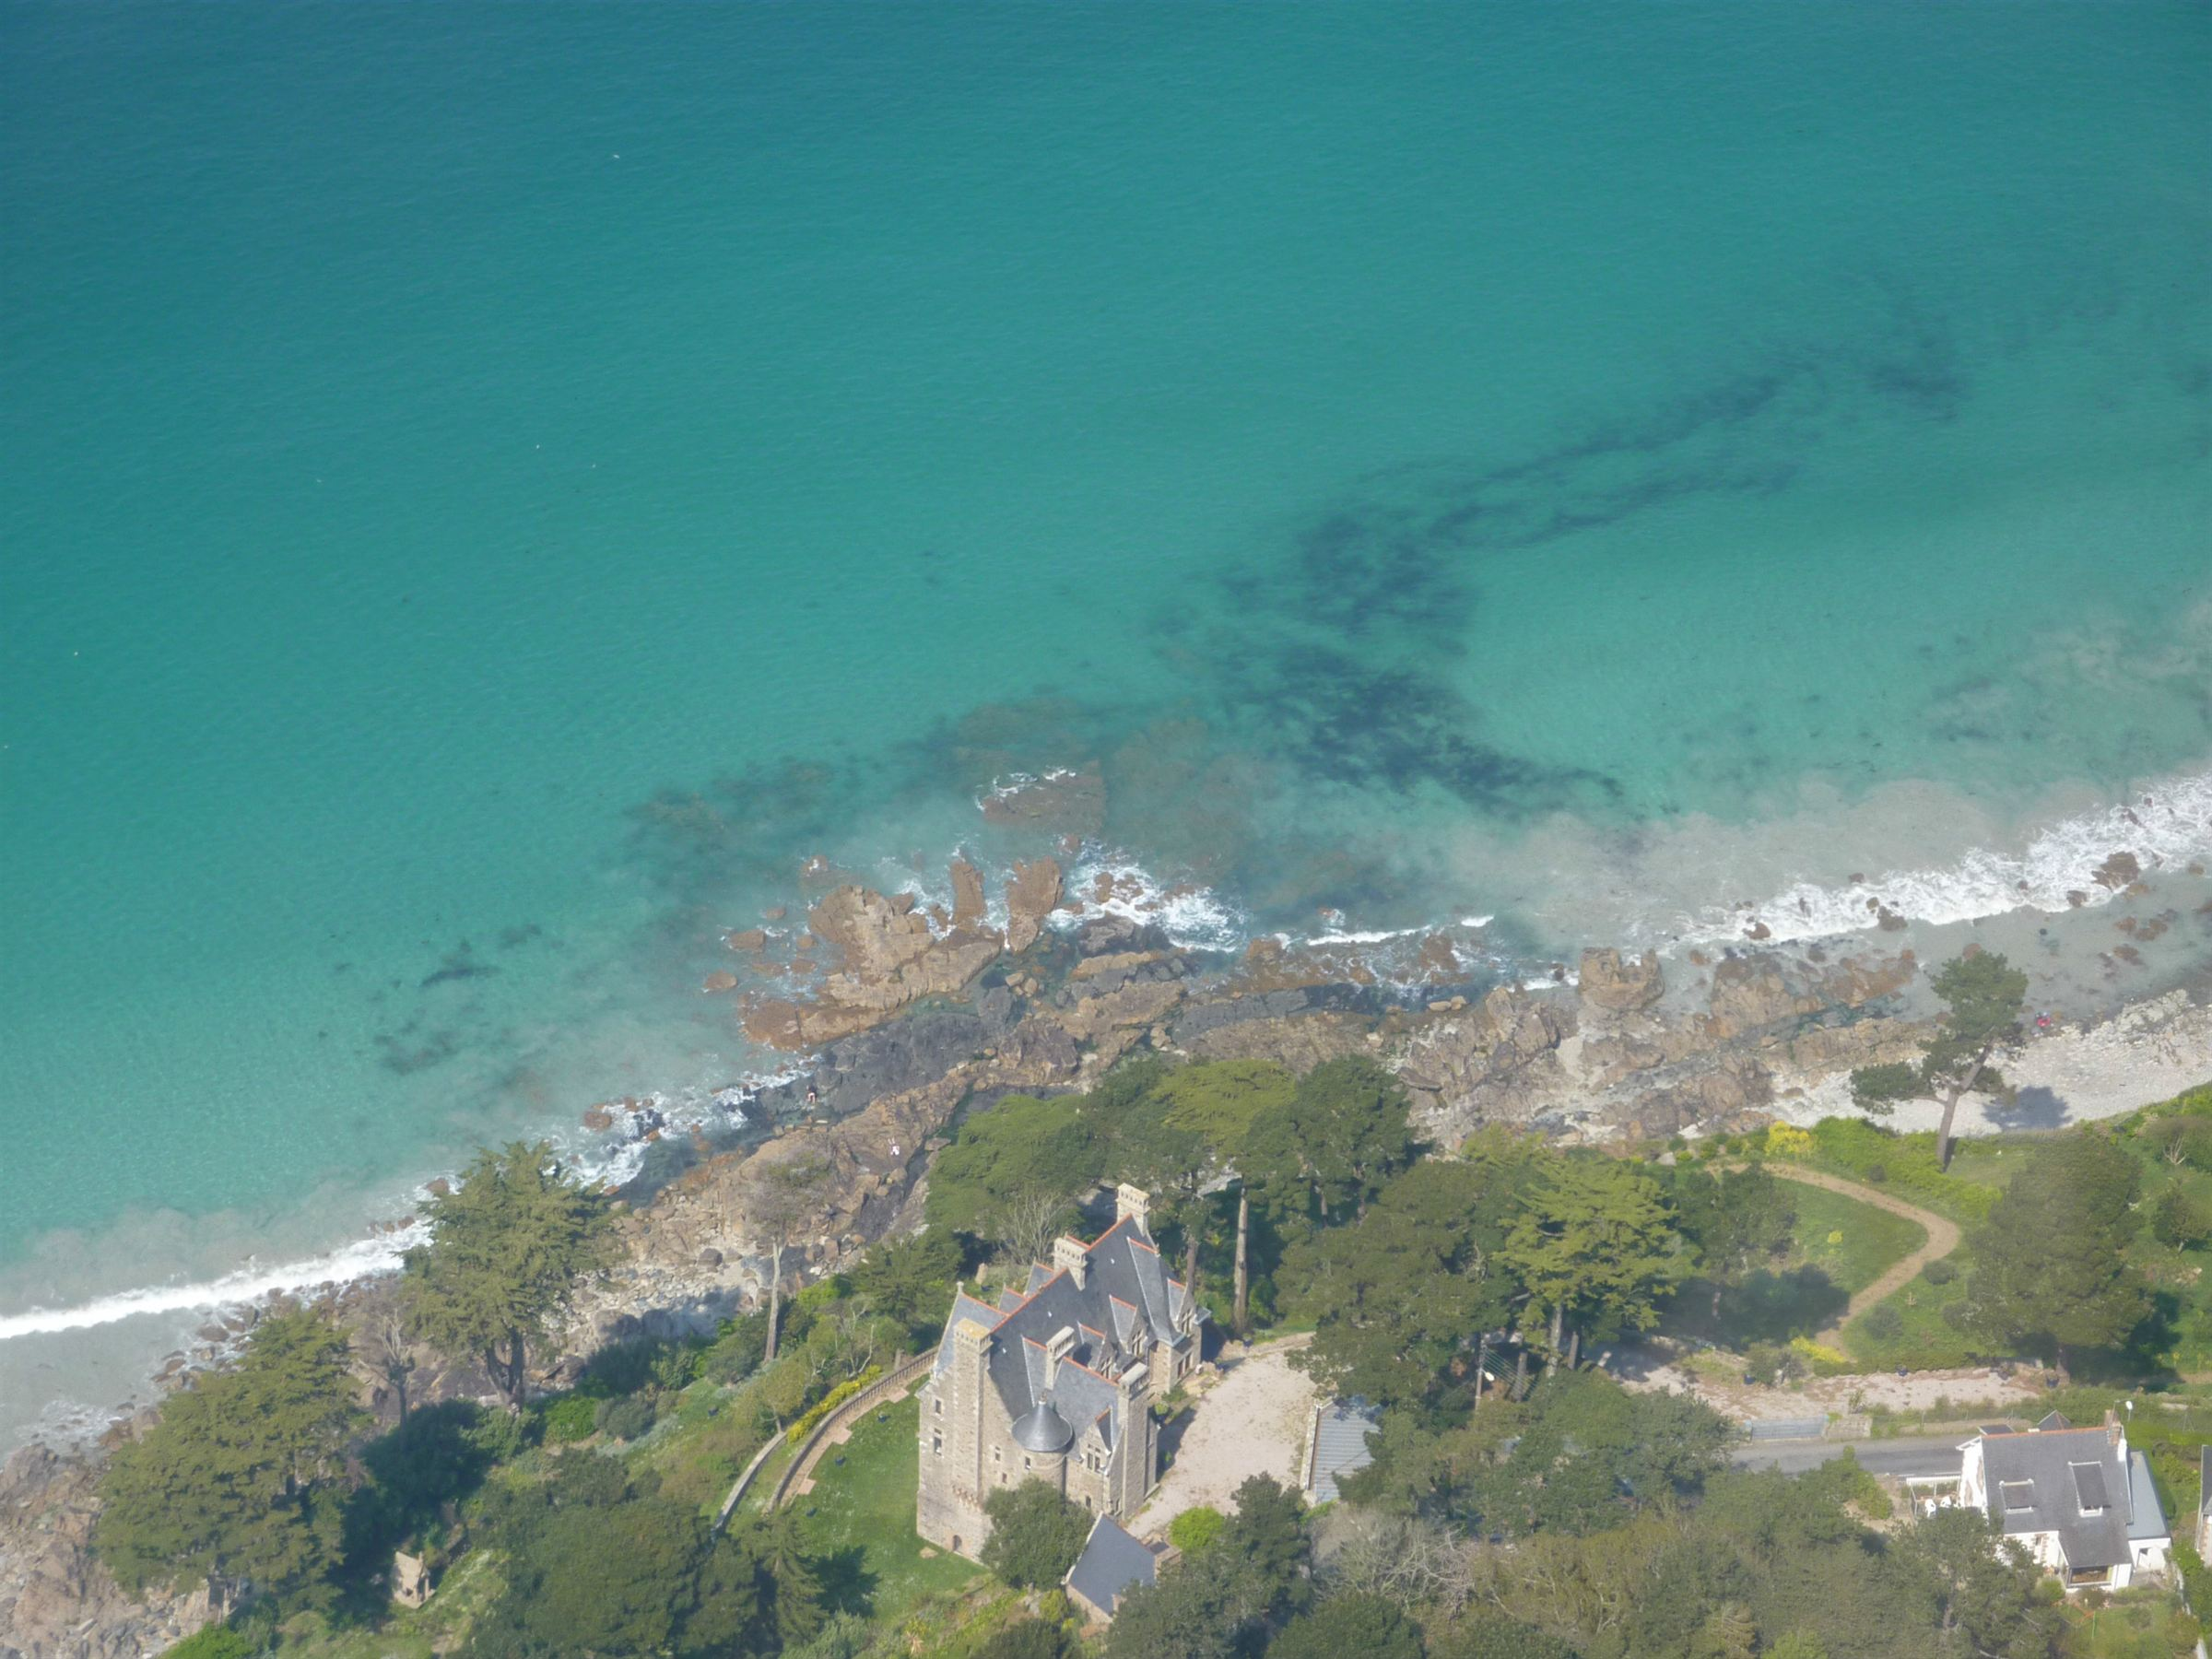 sales property at Perros Guirec Waterfront Manor for sale in Brittany with direct beach access